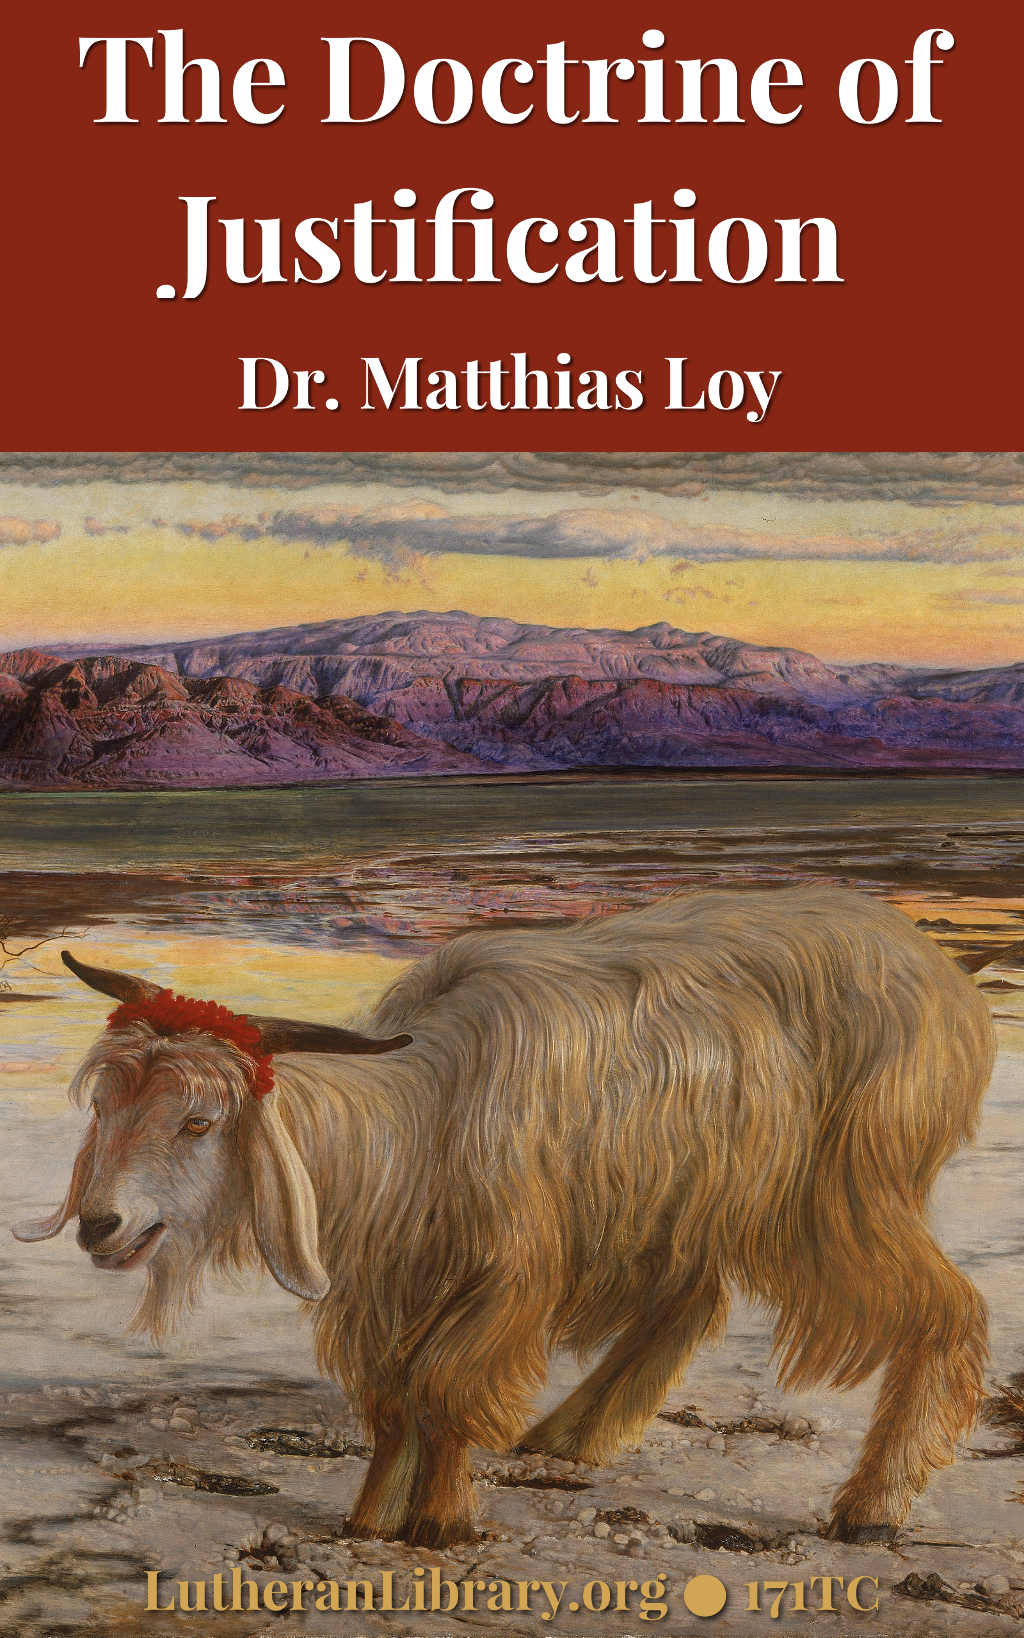 The Doctrine of Justification by Matthias Loy